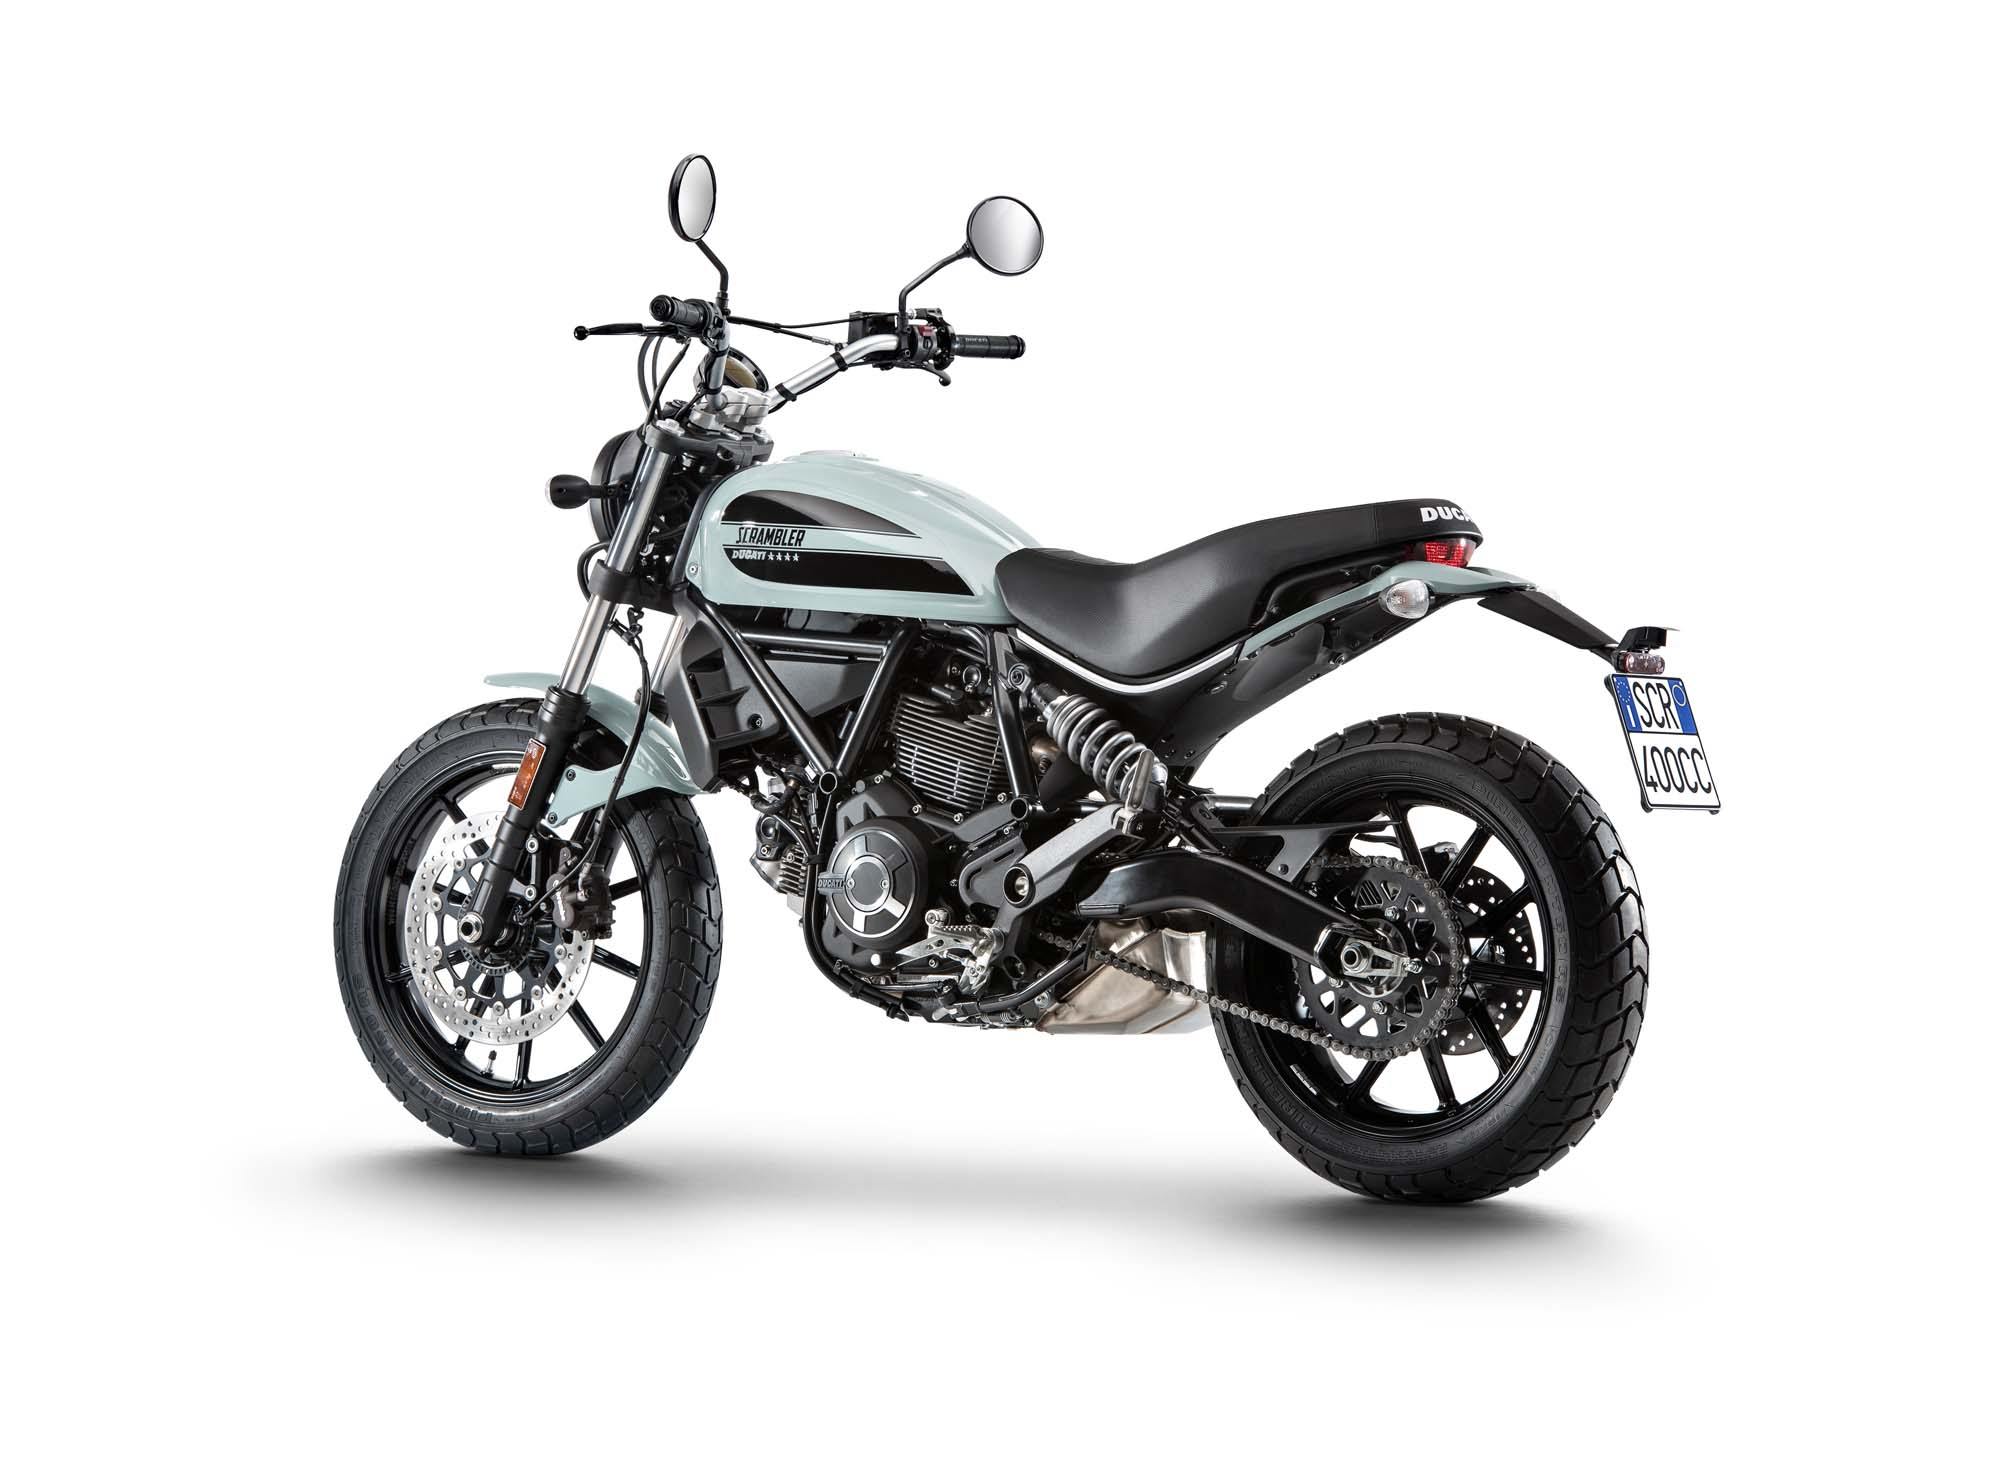 gebrauchte ducati scrambler sixty2 motorr der kaufen. Black Bedroom Furniture Sets. Home Design Ideas